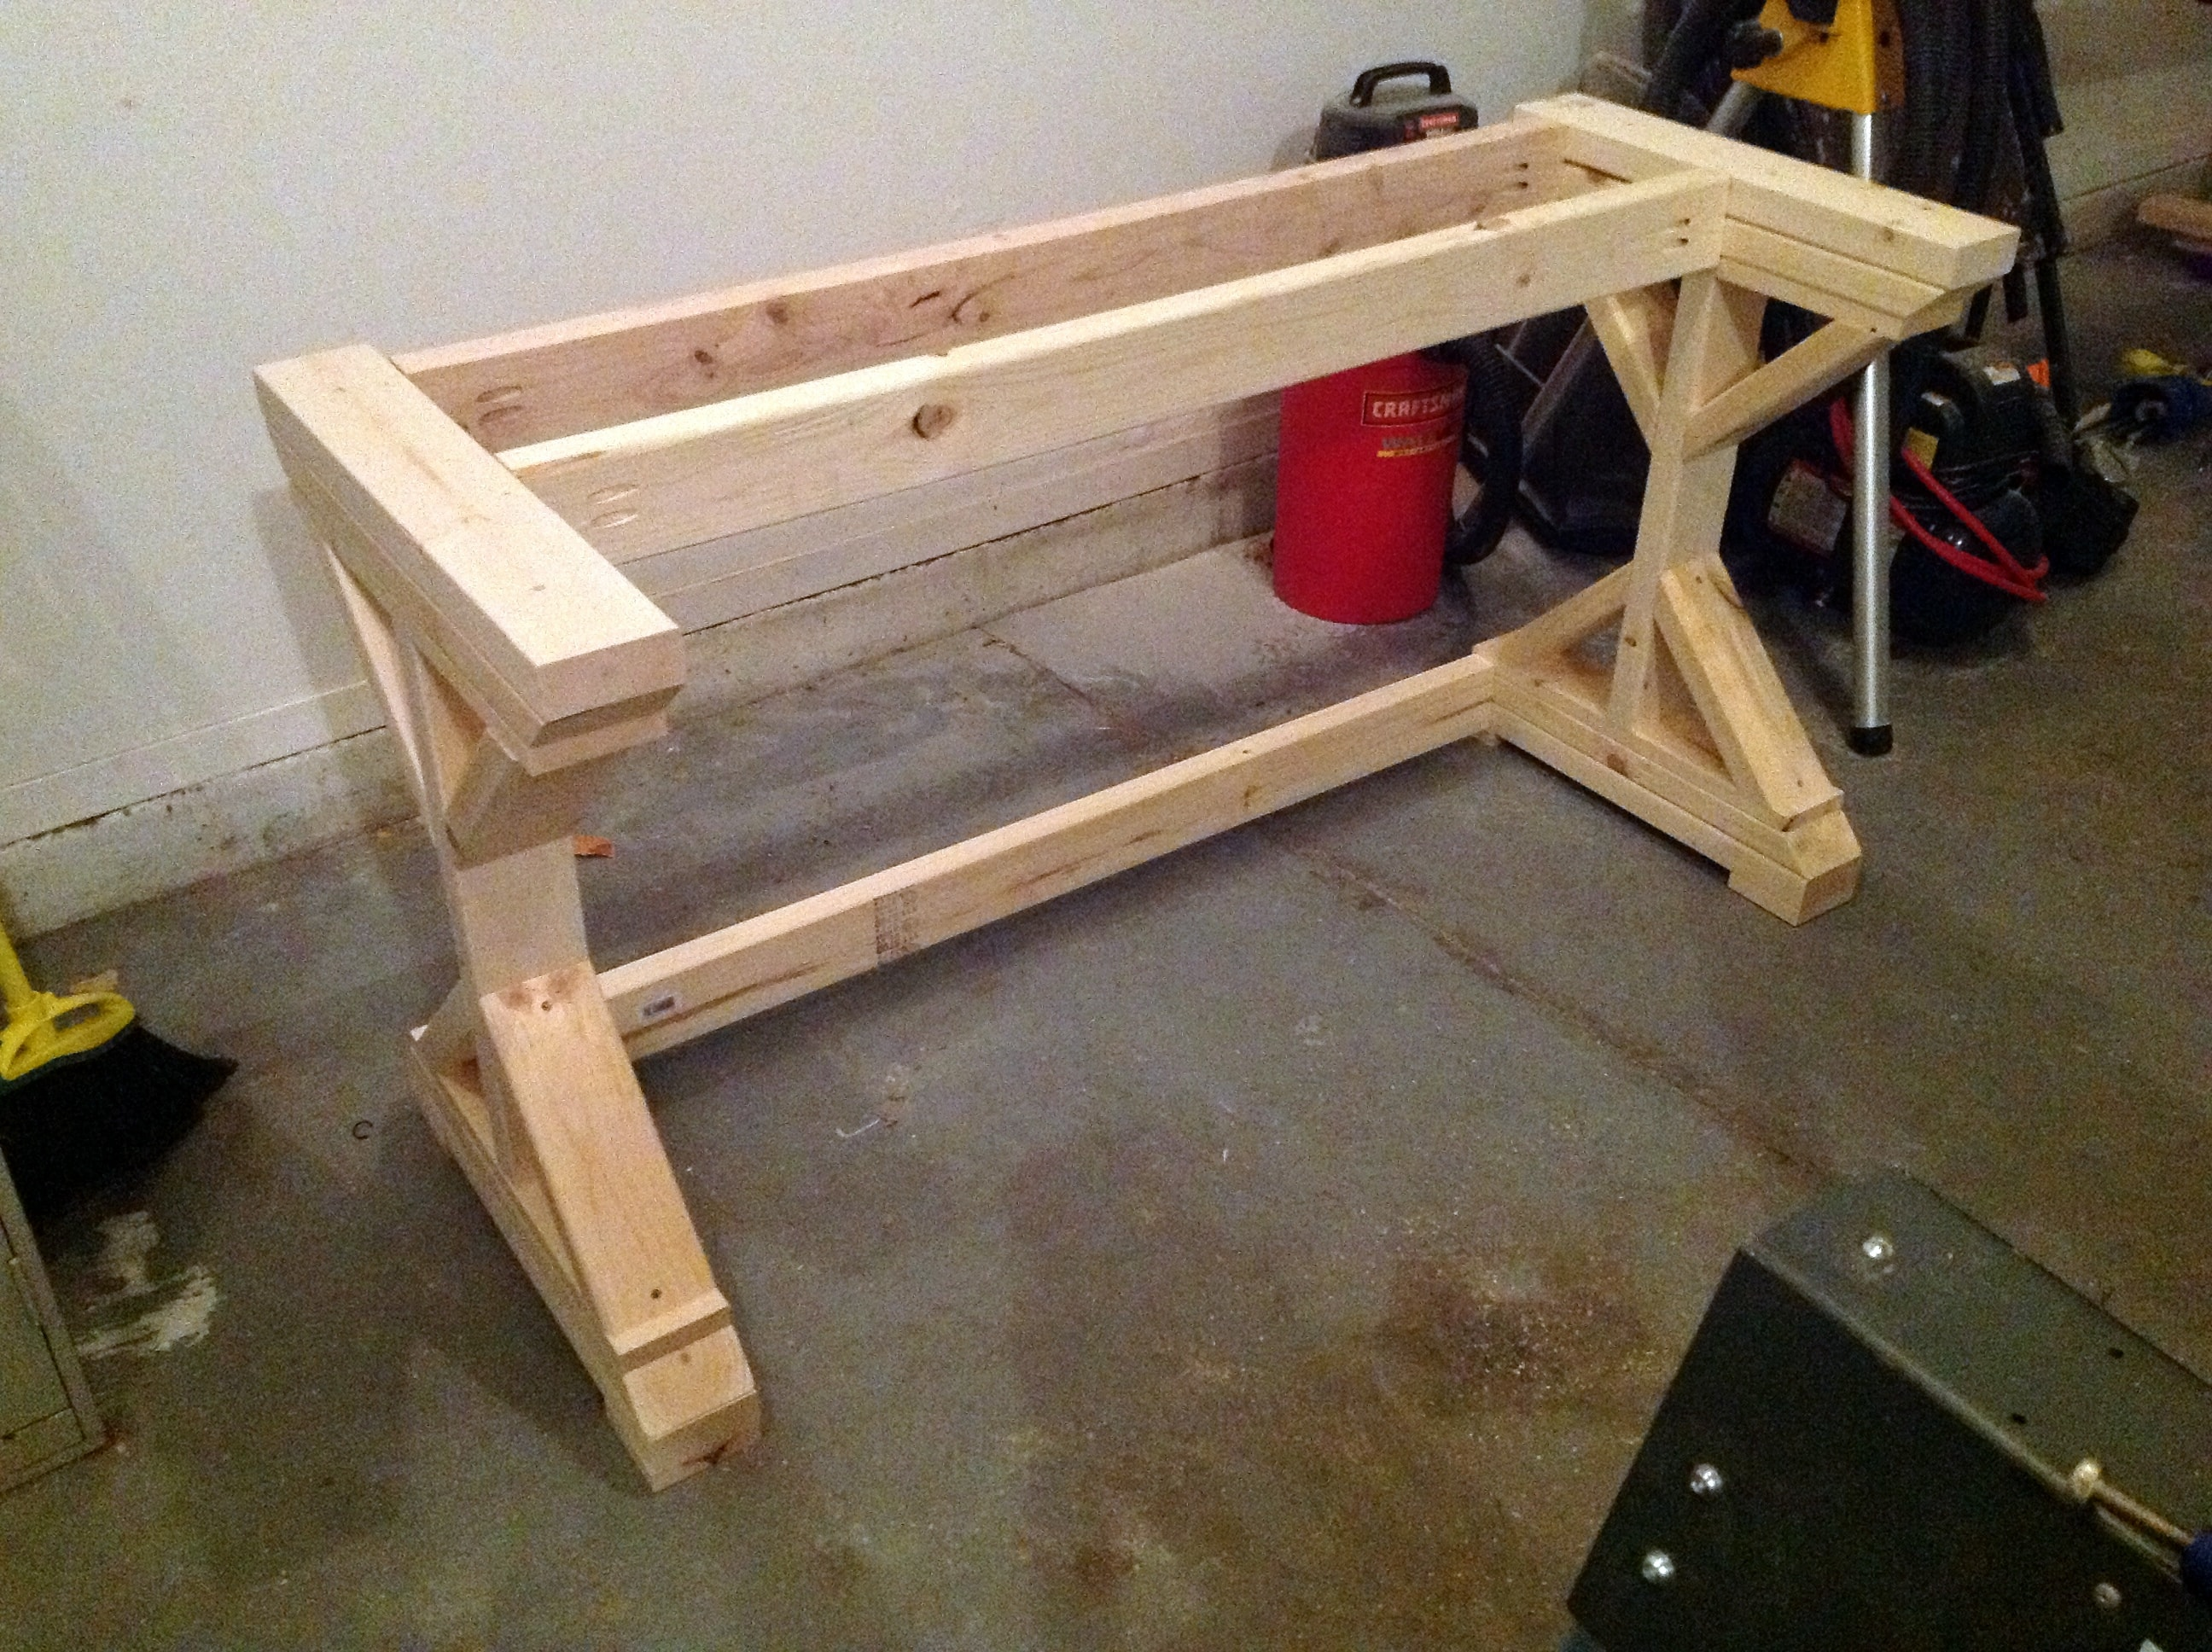 The Ultimate Woodworking Plan For A Diy Desk